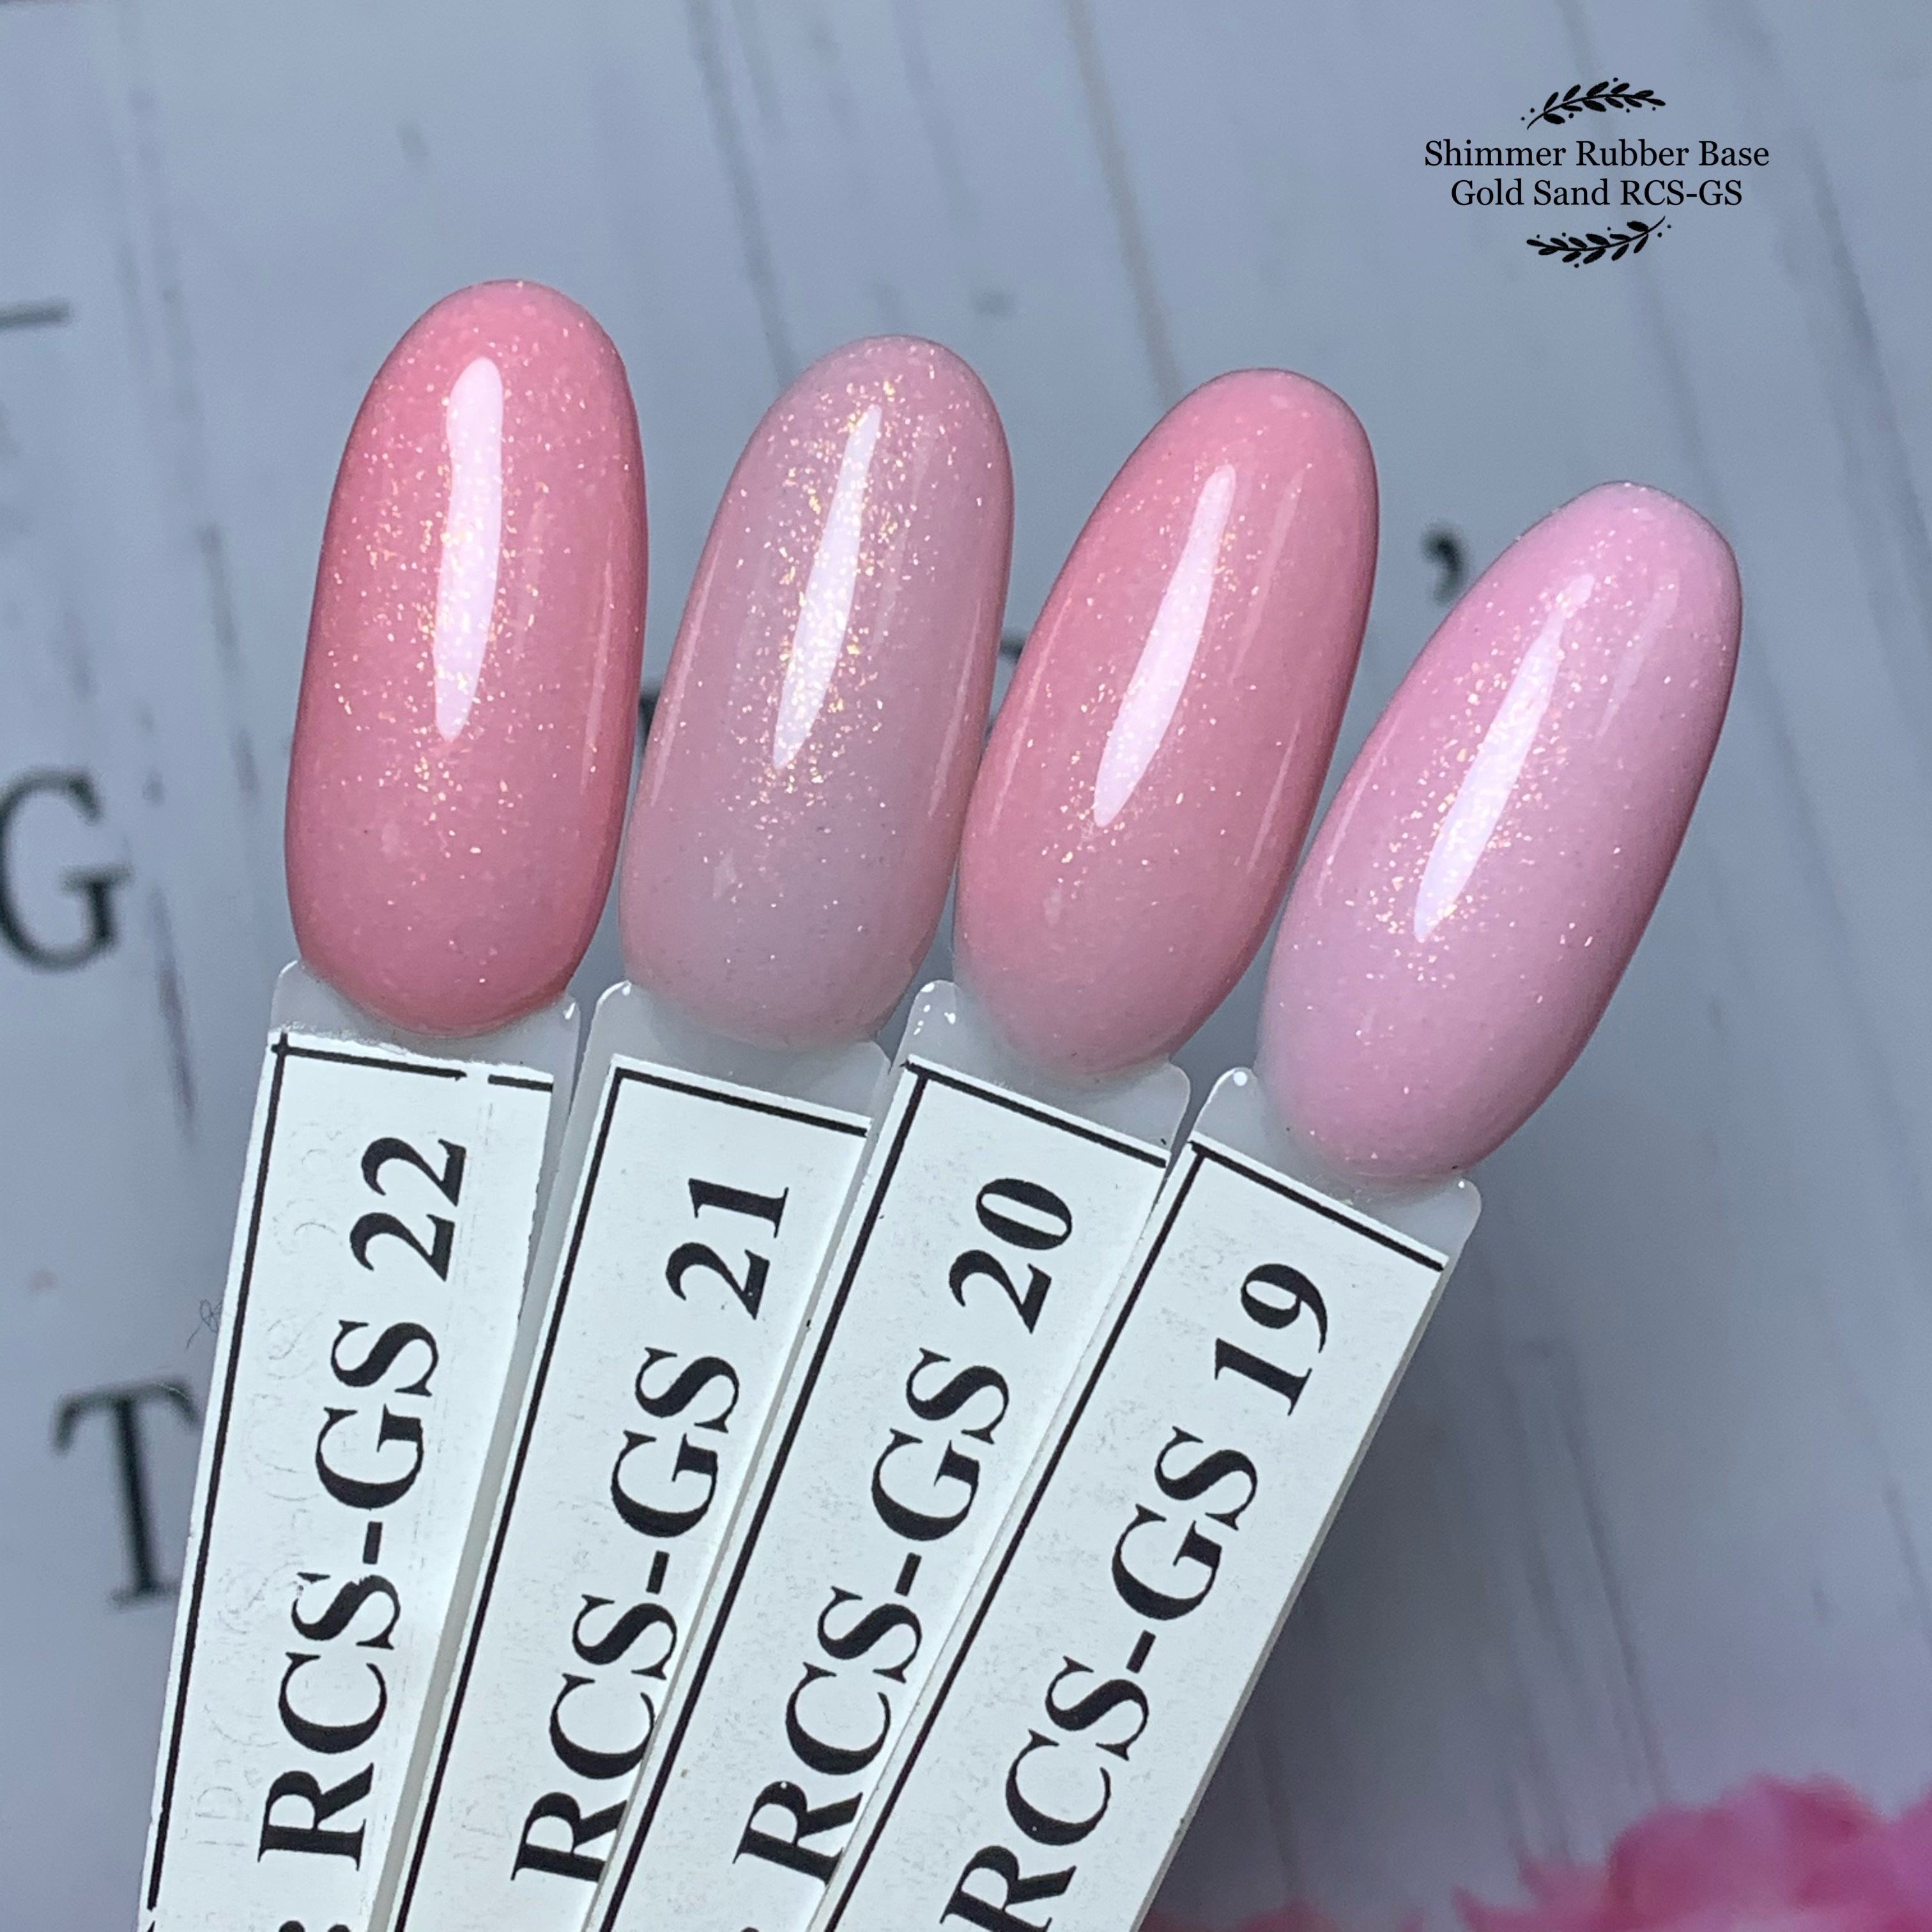 S3 Best selling products Professional nails salon cosmetic Easy Apply Nude color shimmer base UV gel polish